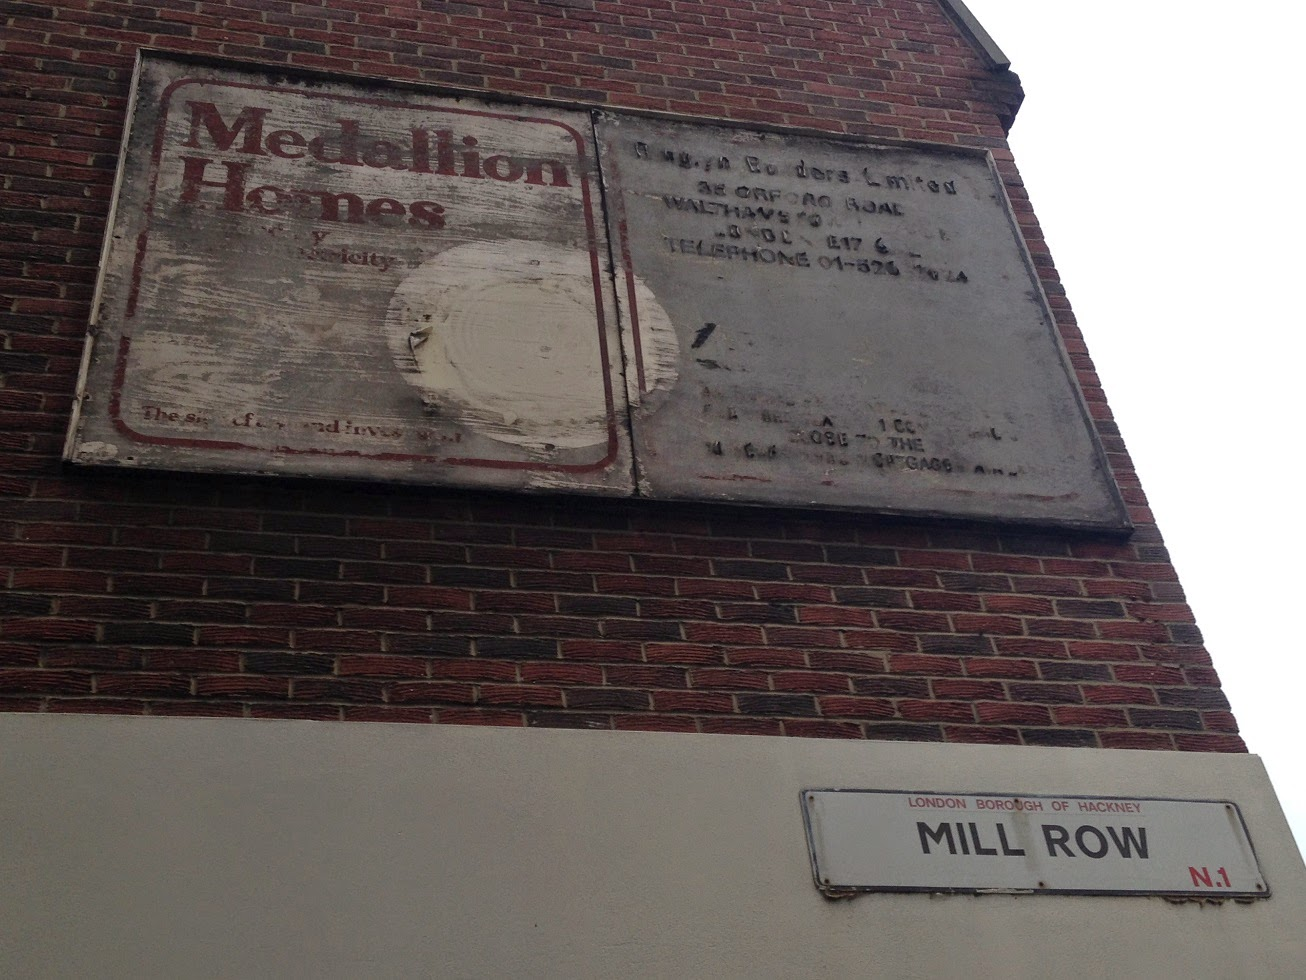 Ghost sign, Hoxton, London N1